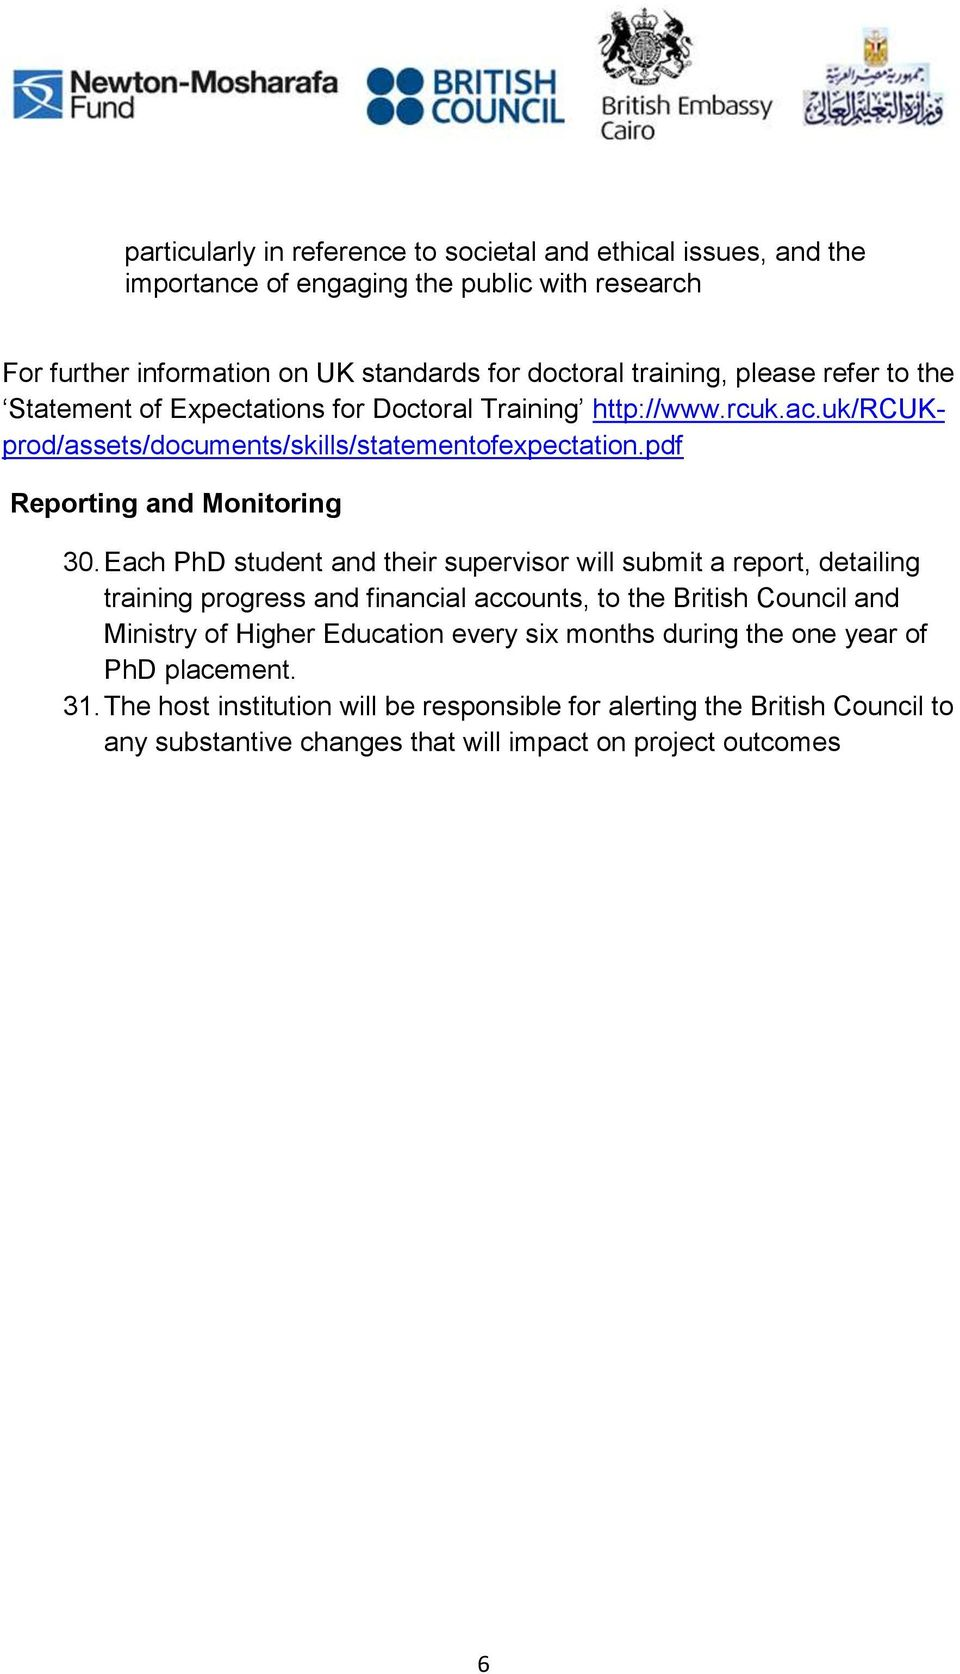 Each PhD student and their supervisor will submit a report, detailing training progress and financial accounts, to the British Council and Ministry of Higher Education every six